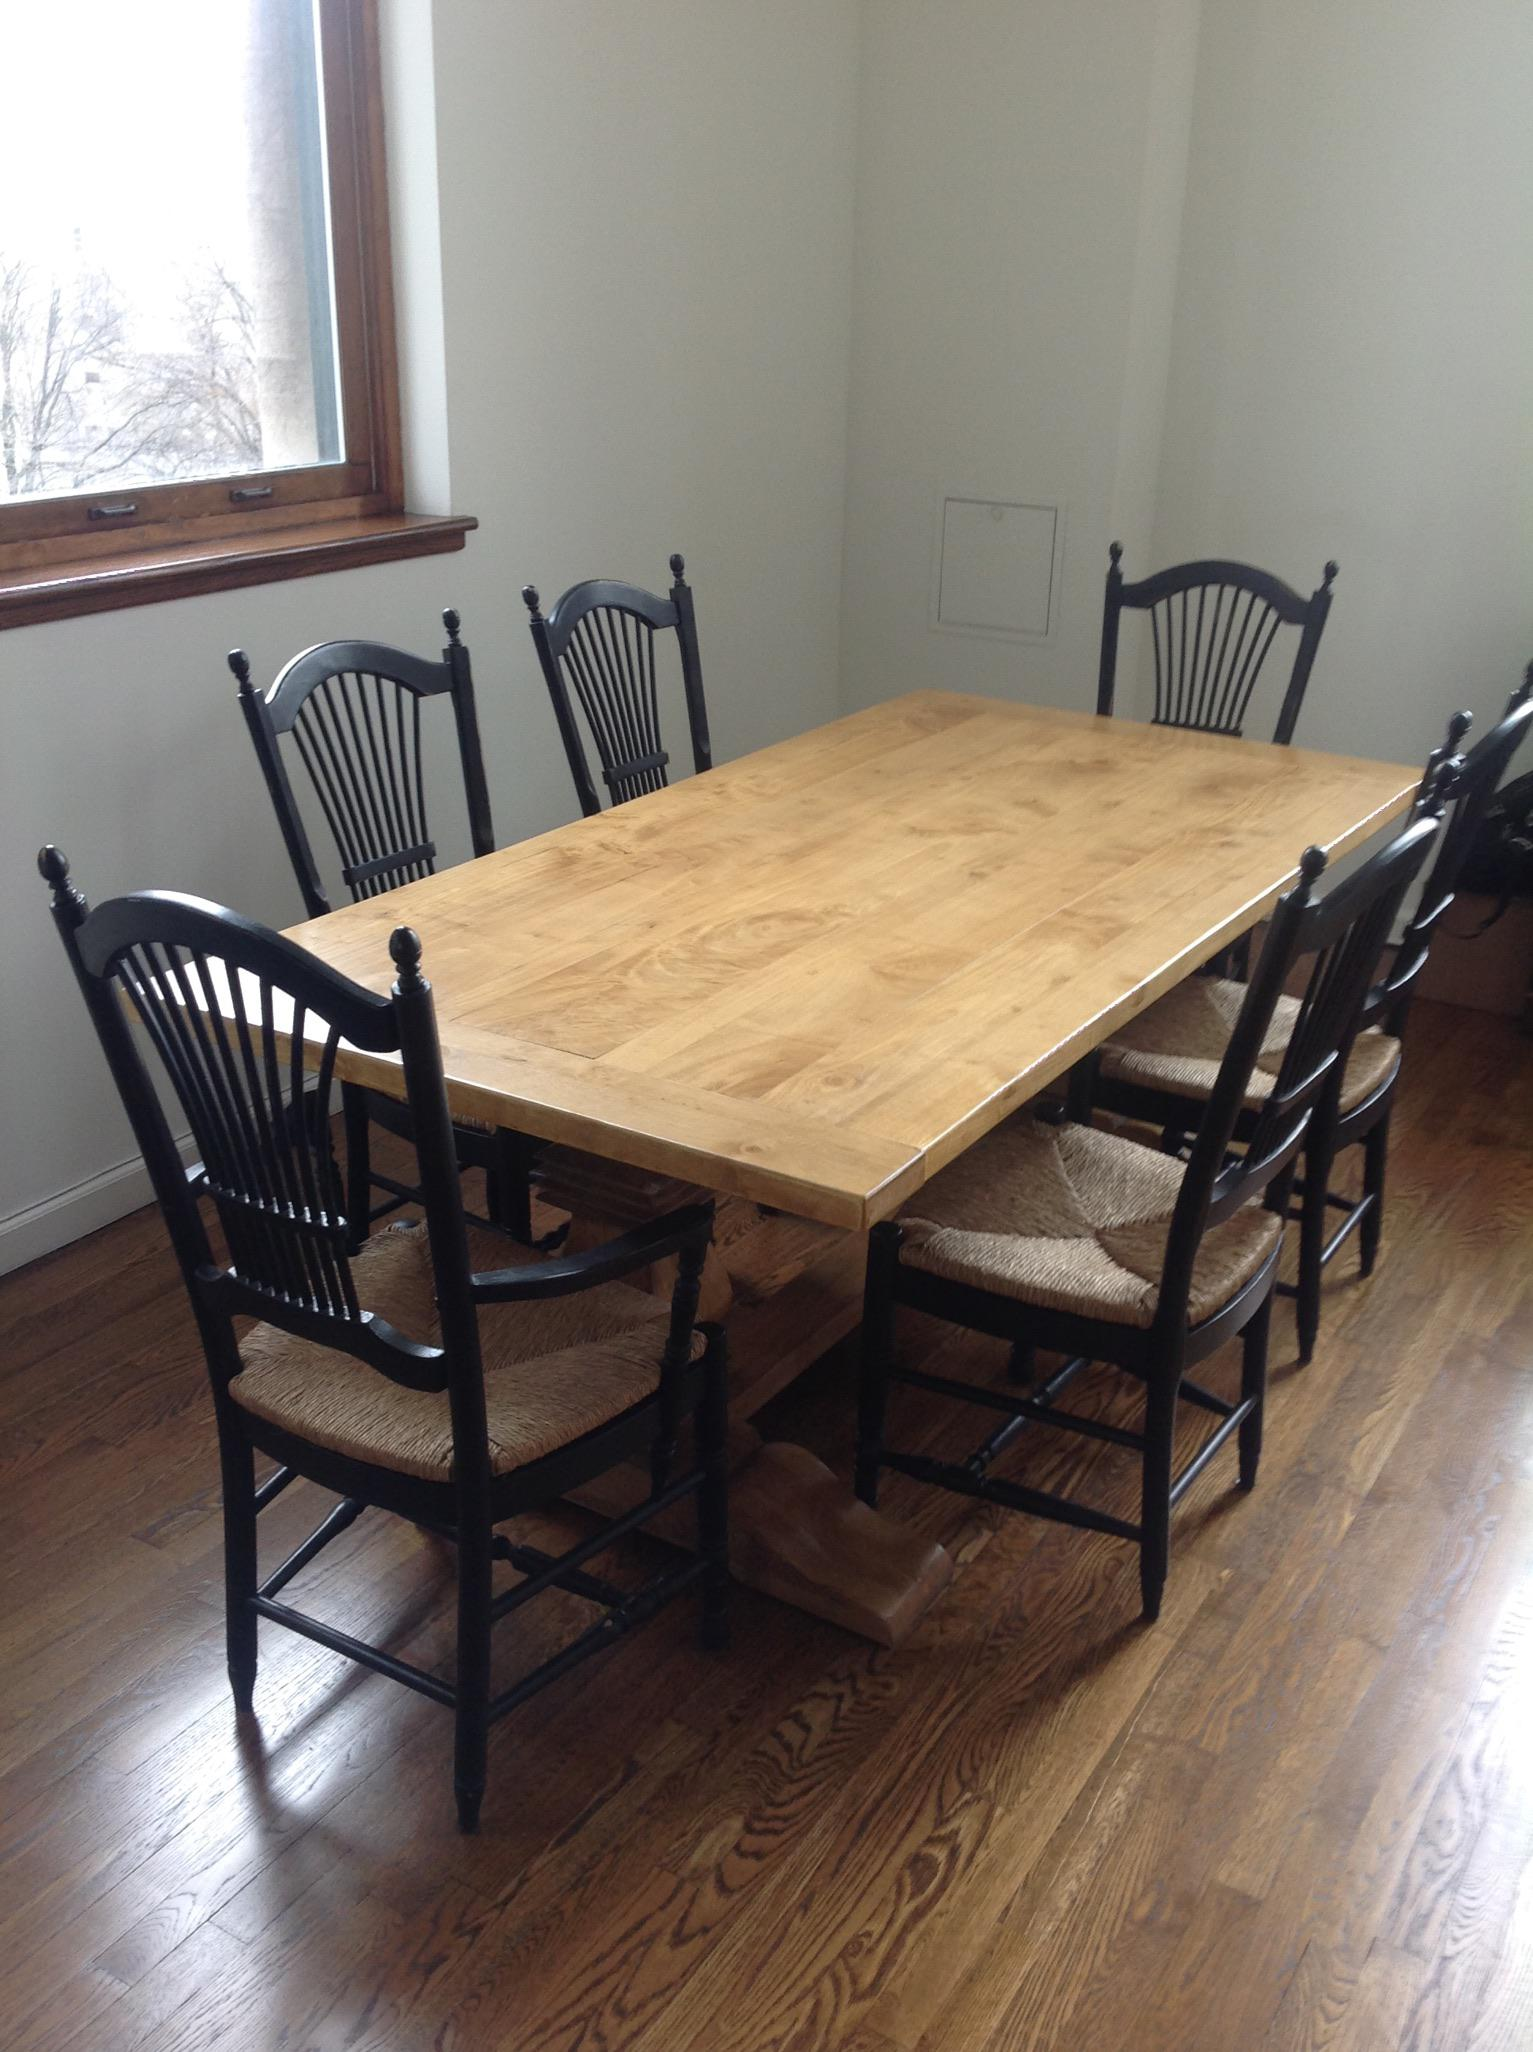 Perfect Table For Family Dining In Kitchen Or Gathering Friends In Great  Room. This Solid